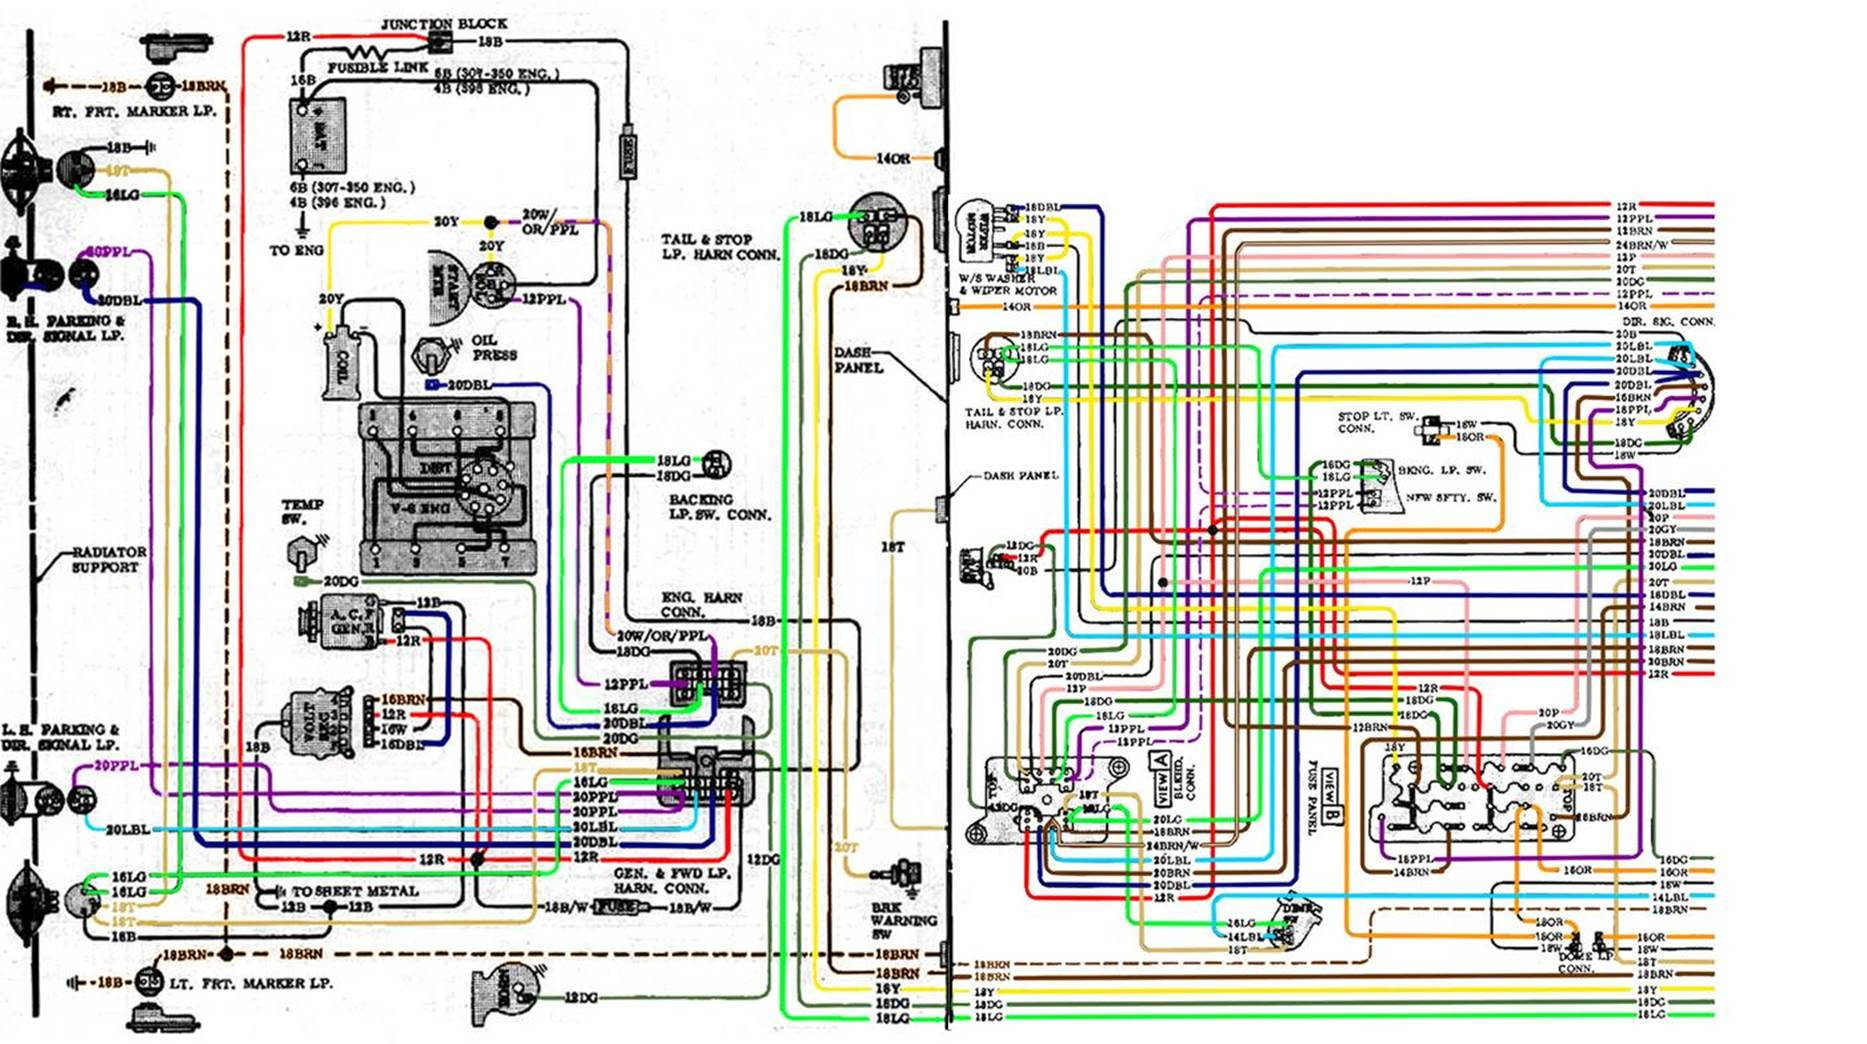 image002 72 c10 wiring diagram chevy truck wiring diagram \u2022 wiring diagrams 66 nova wiring harness at bayanpartner.co